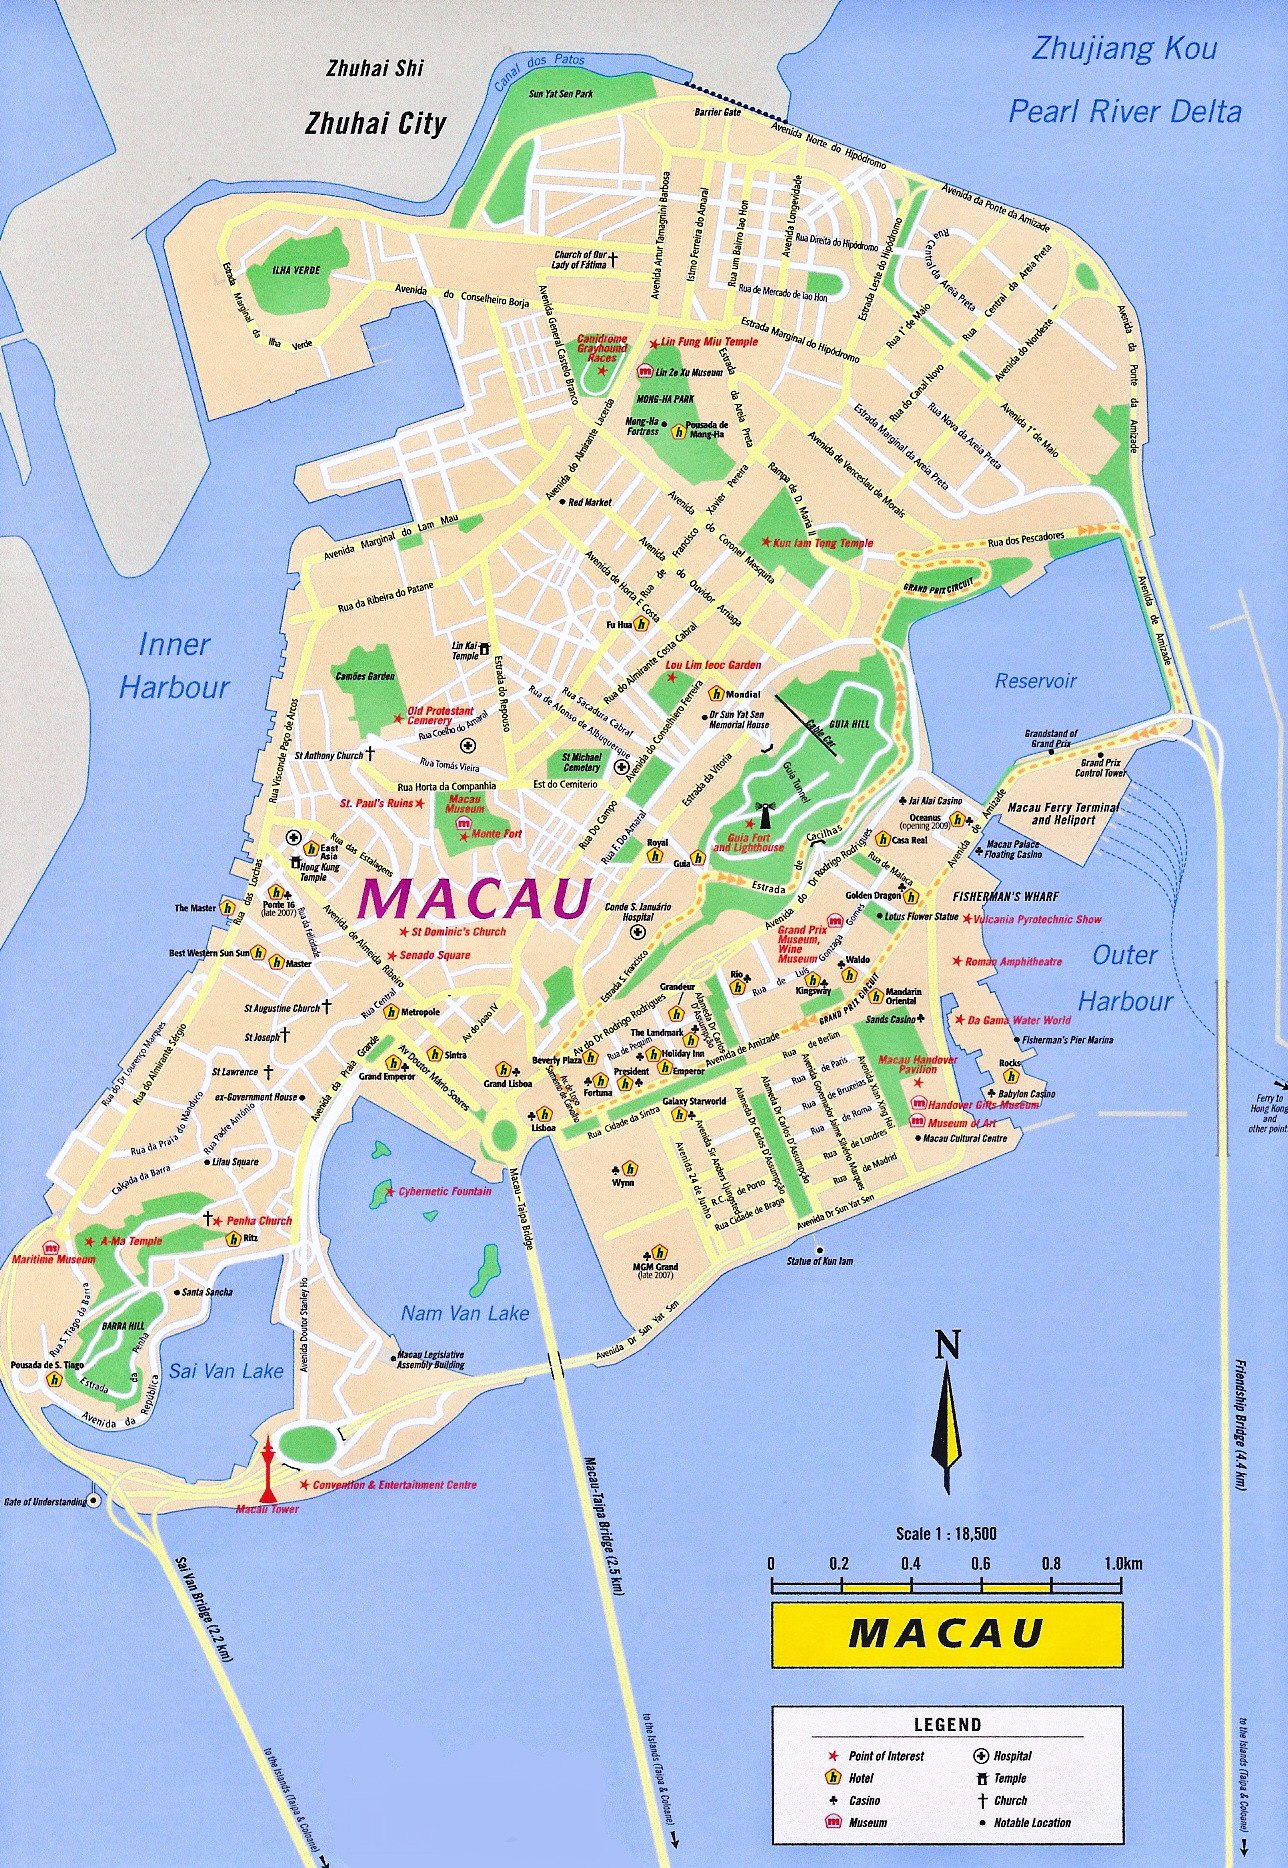 Macau travel map 20102011 Printable Macau tourist maps